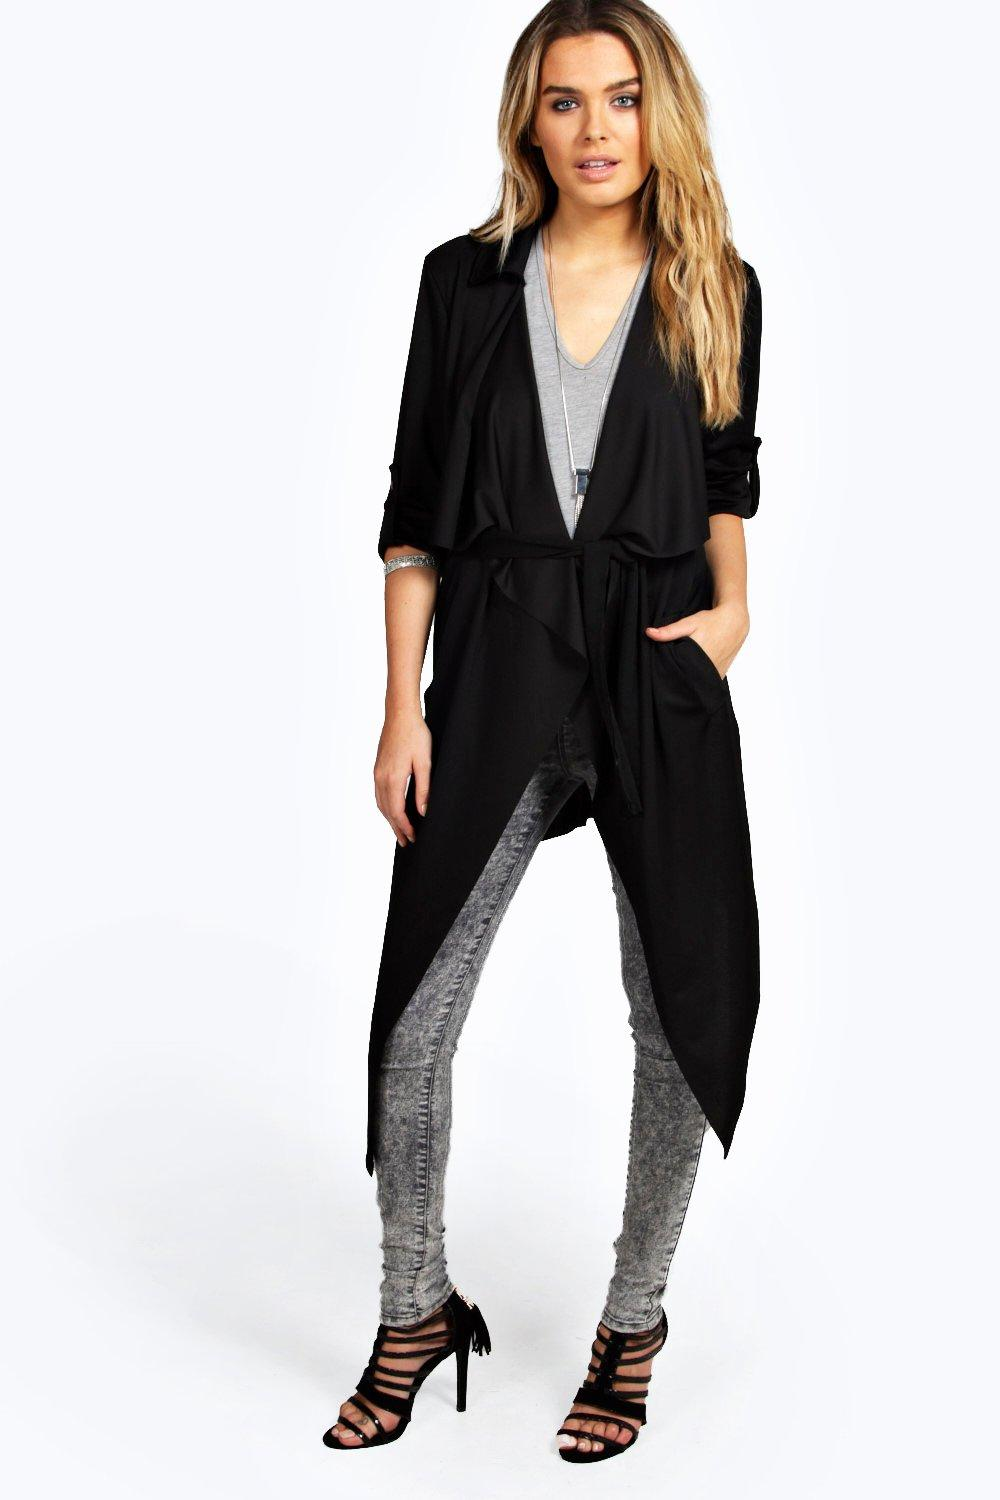 Belted Trench black